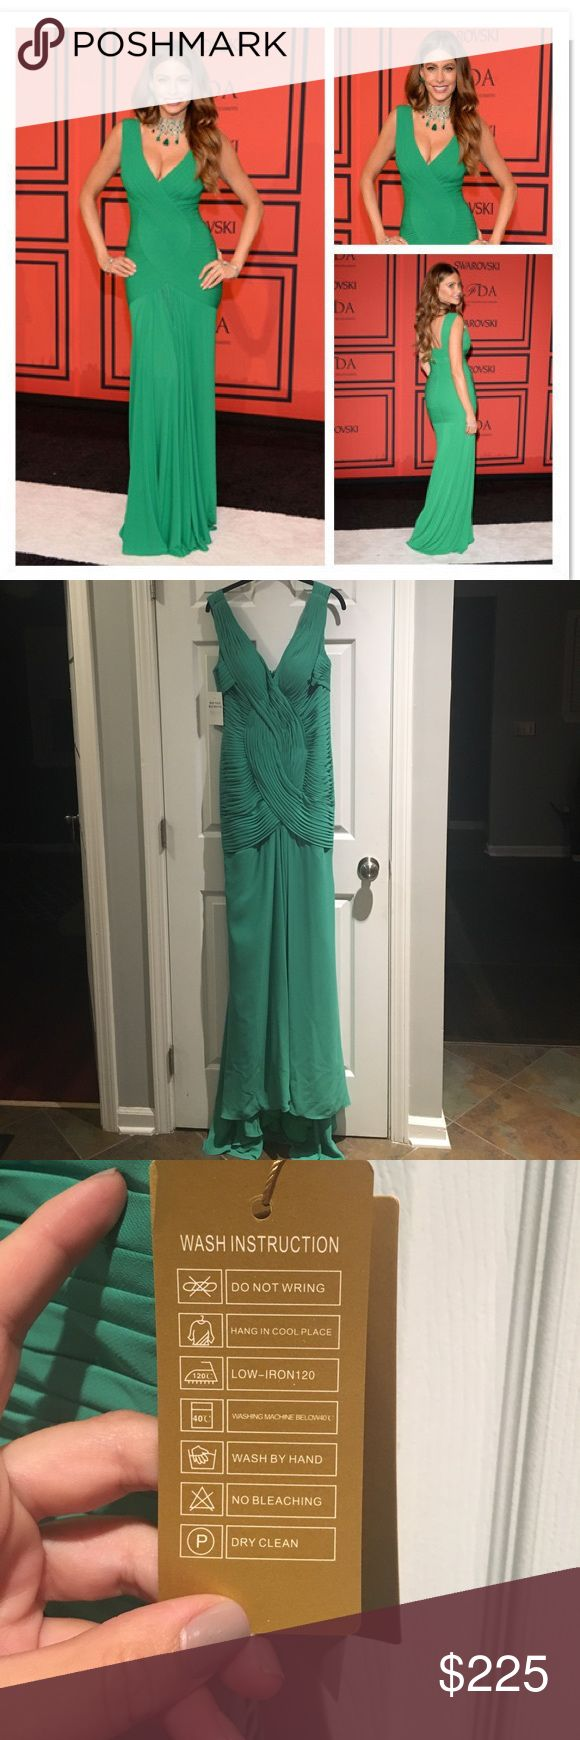 NWT Sofia Vergara Green CFDA Fashion Awards Gown Sofia Vergara Green CFDA Fashion Awards Gown from The Celebrity Dresses site and never worn.  Perfect for prom! Chiffon mermaid/trumpet style train.  Measurements : Bust: 35.5 in, Waist: 28.5 in, Hip: 38.75 in, Hollow to floor: 59 in Celeb Dresses Prom